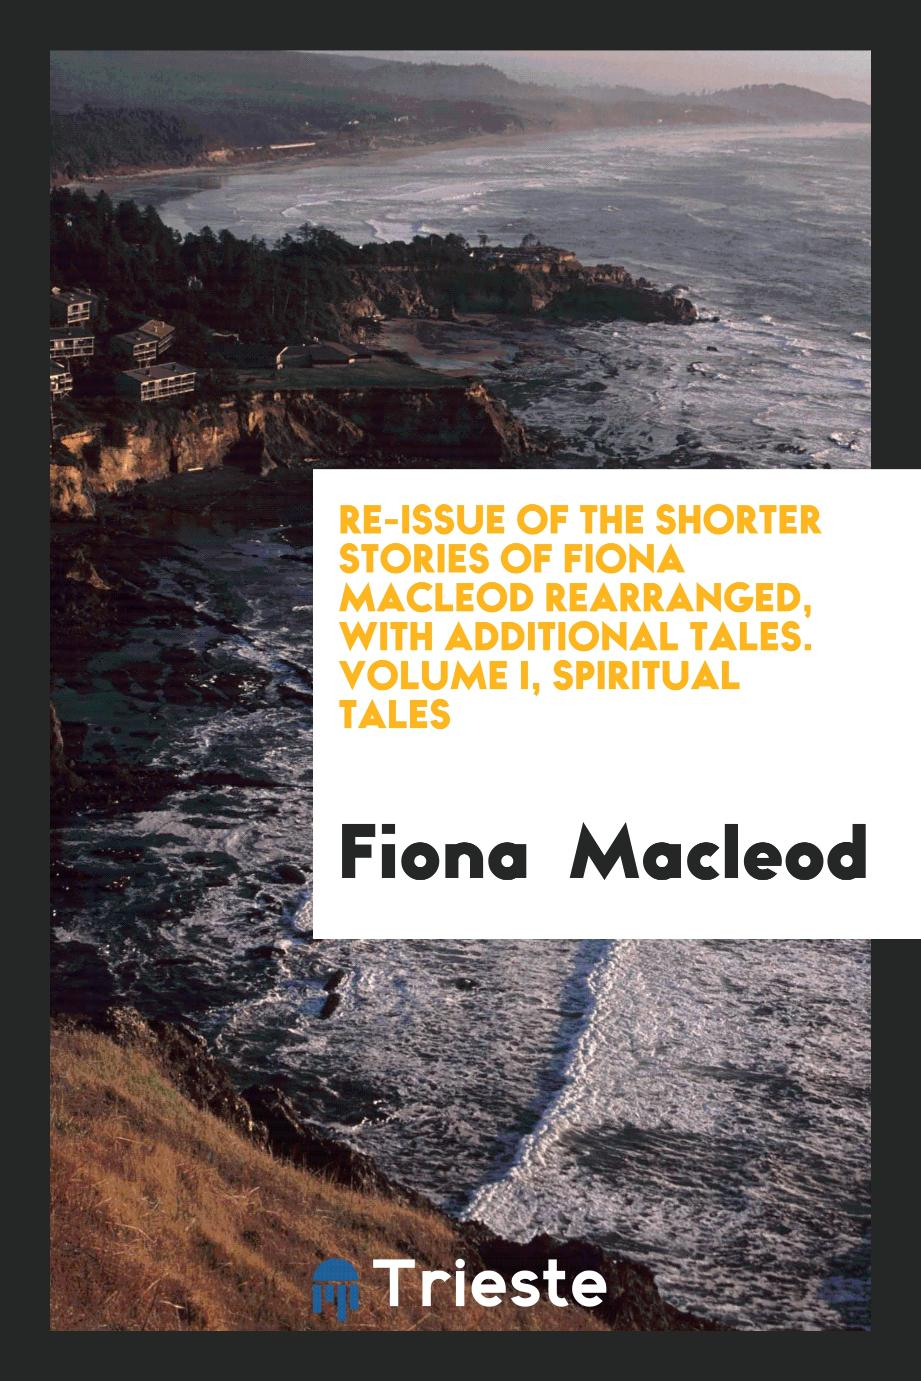 Re-issue of the shorter stories of Fiona Macleod rearranged, with additional tales. Volume I, Spiritual tales